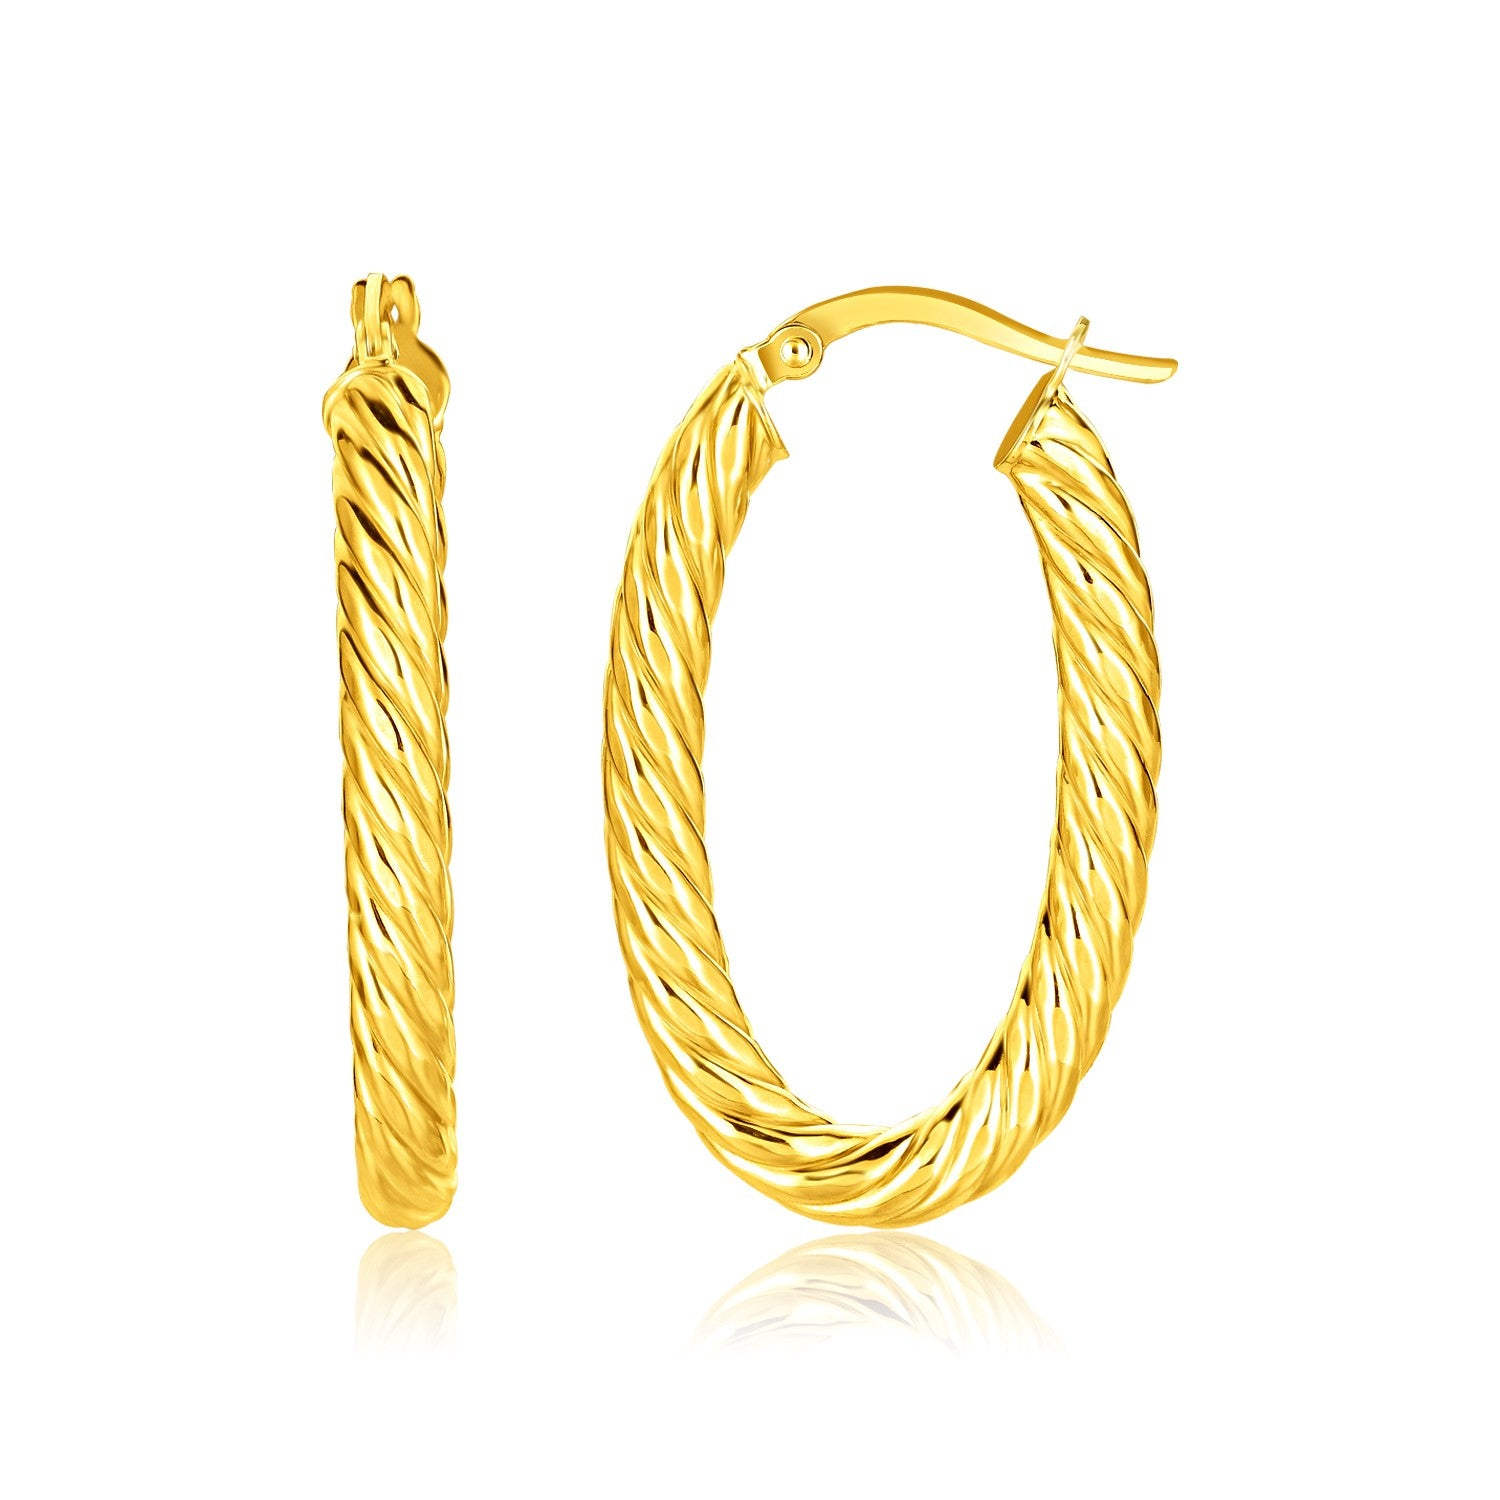 14K Yellow Gold Twisted Cable Oval Hoop Earrings